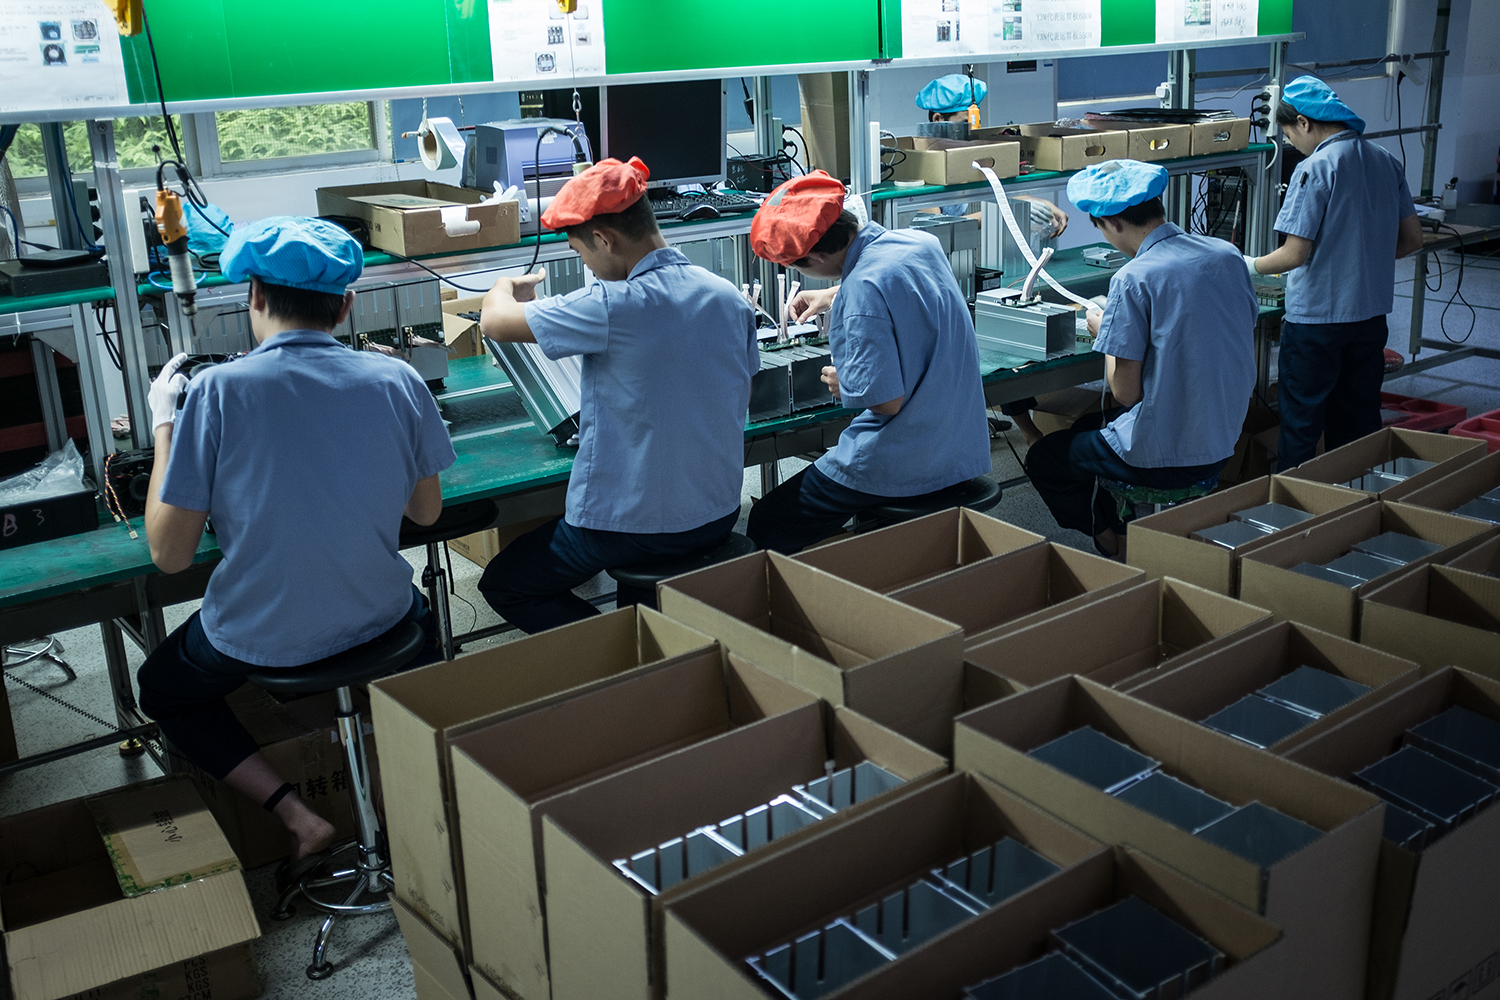 Employees work on an assembly line of AntMiner S9 mining machine at Bitmain's manufacturing base, Shenzhen, November 9, 2016.